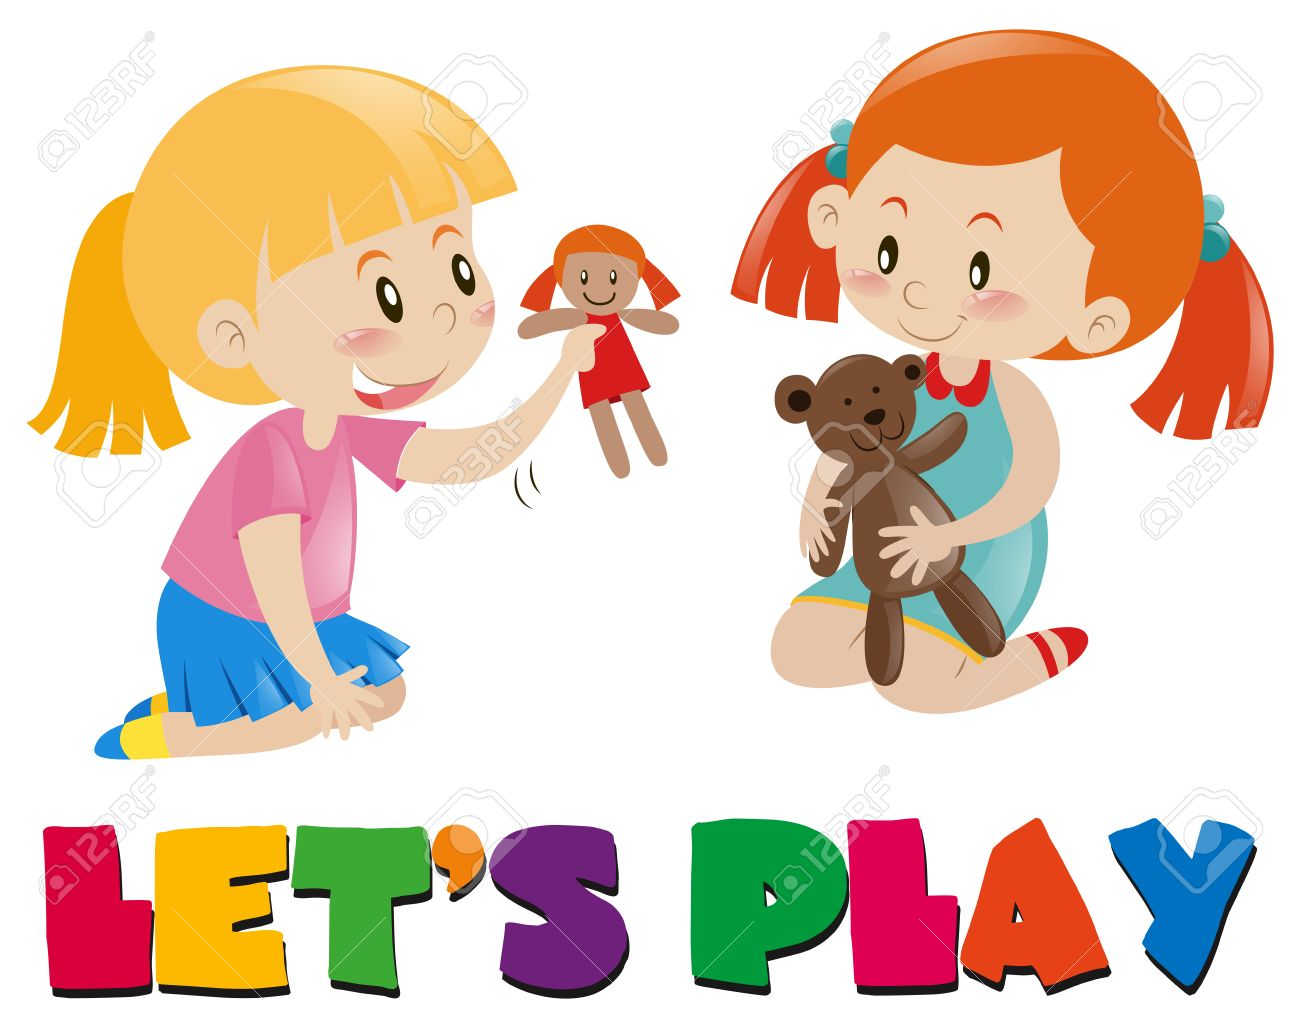 Two girls playing with dolls illustration.